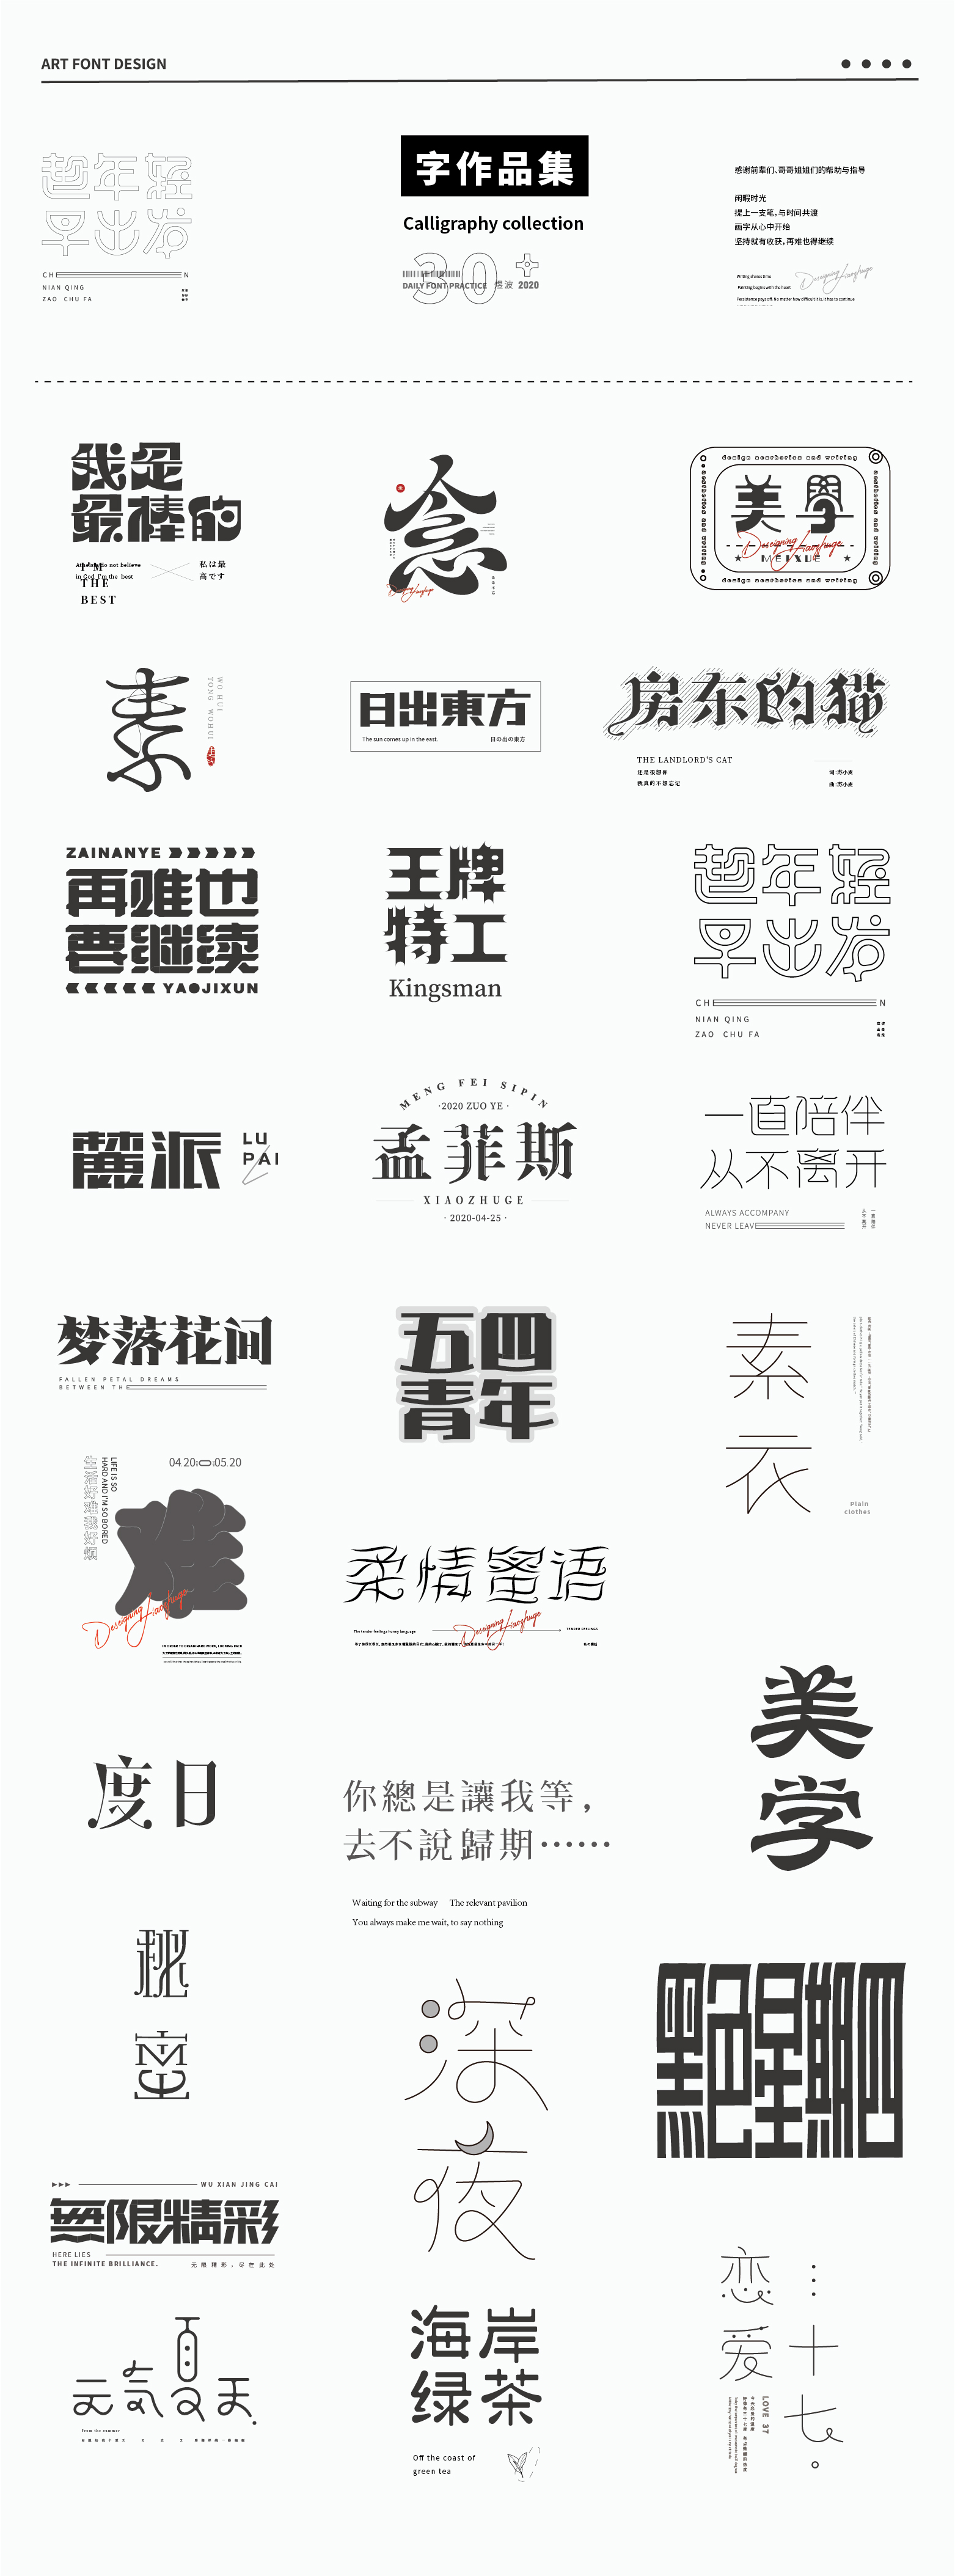 FONT DESIGN font portfolio in the first half of the year